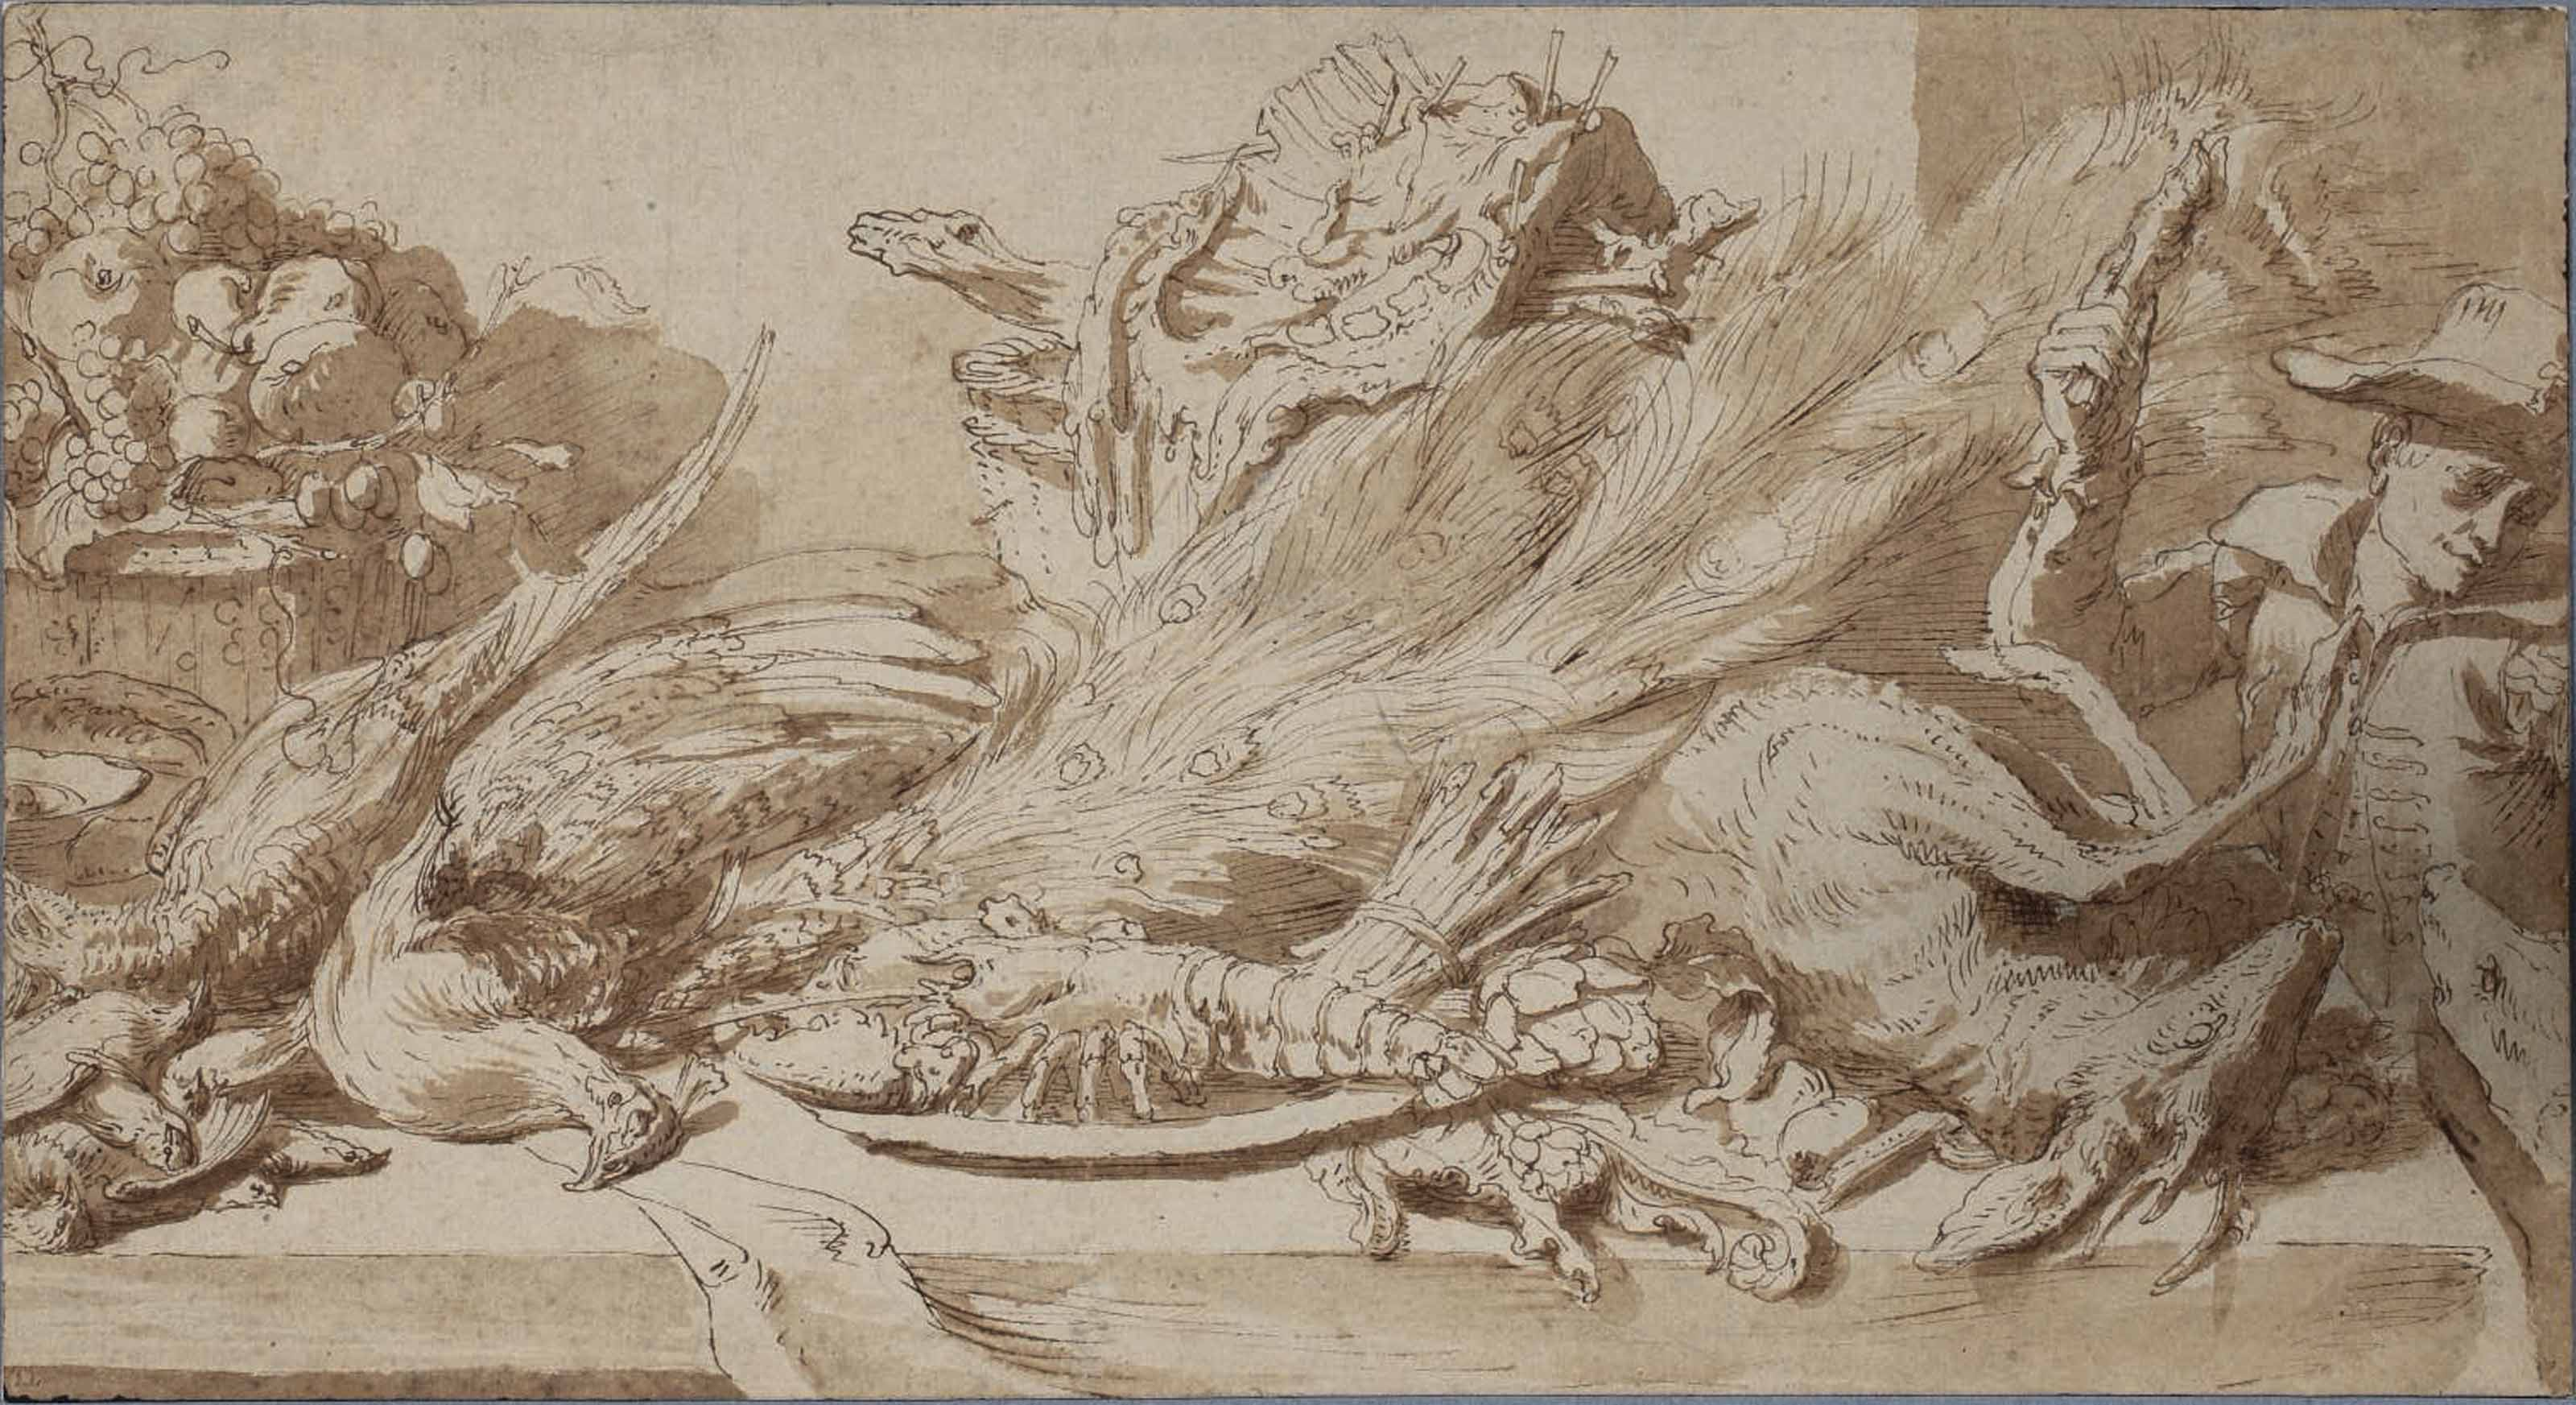 Still life of game, fish and fruit on a table, with a boy teasing a dog on the right